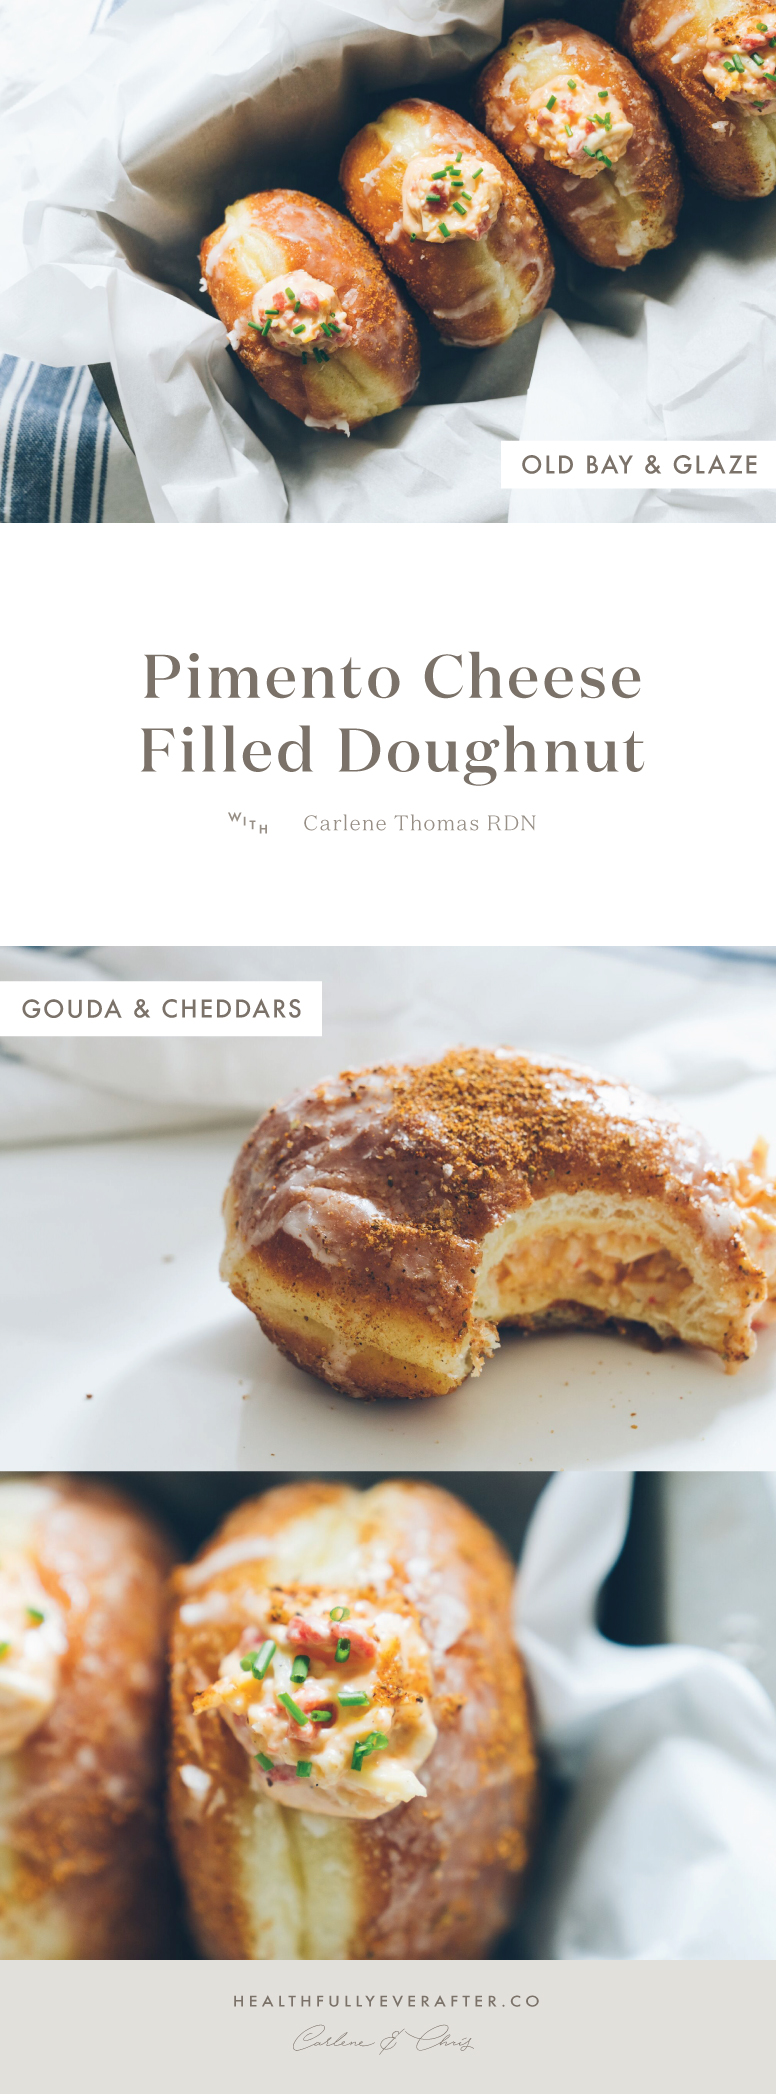 pimento cheese filled old bay doughnut